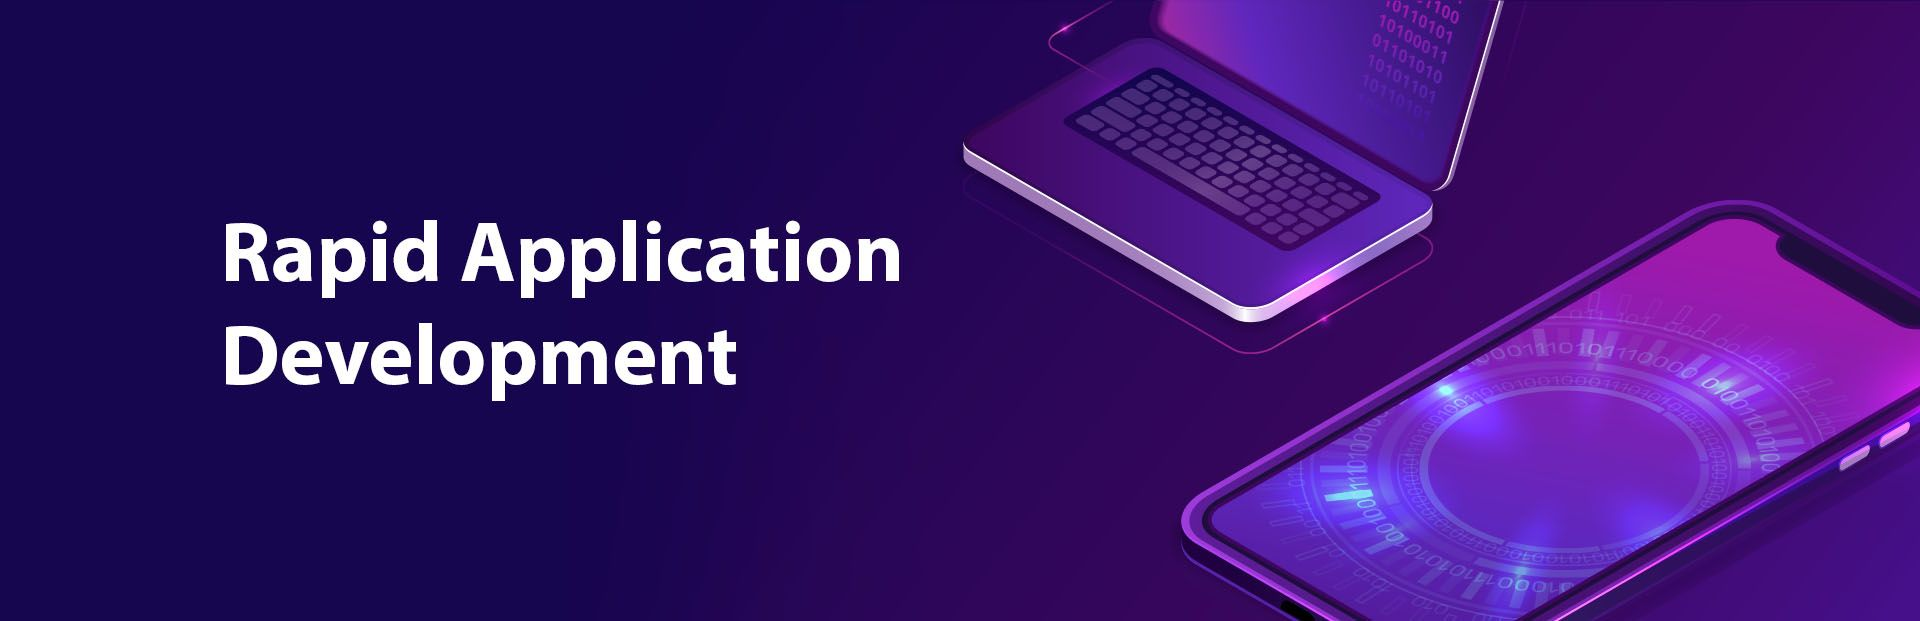 Why Is Rapid Application Development Trending?